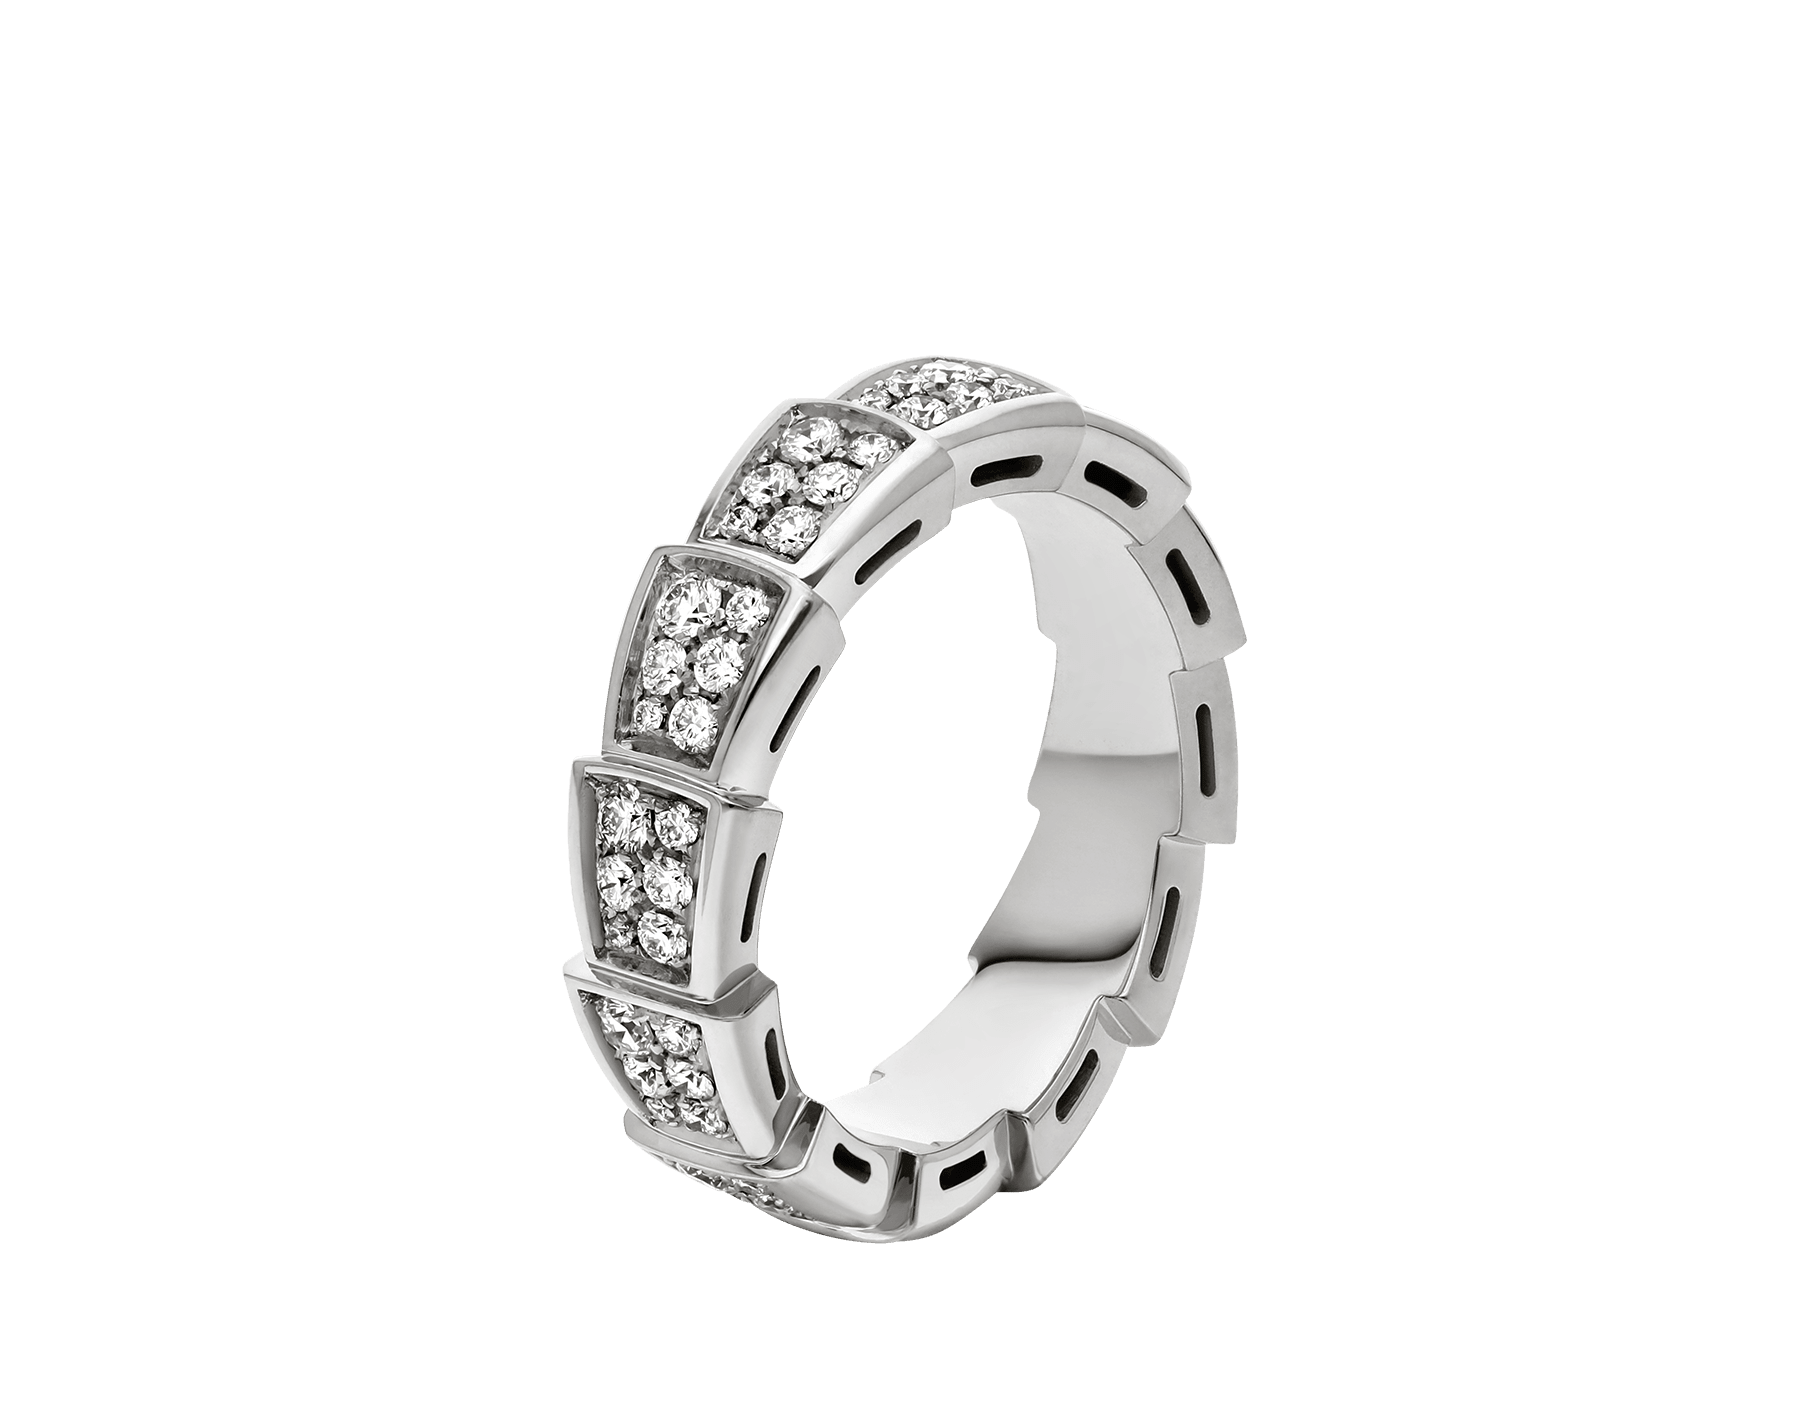 Serpenti Viper band ring in 18 kt white gold set with full pavé diamonds . AN857940 image 1